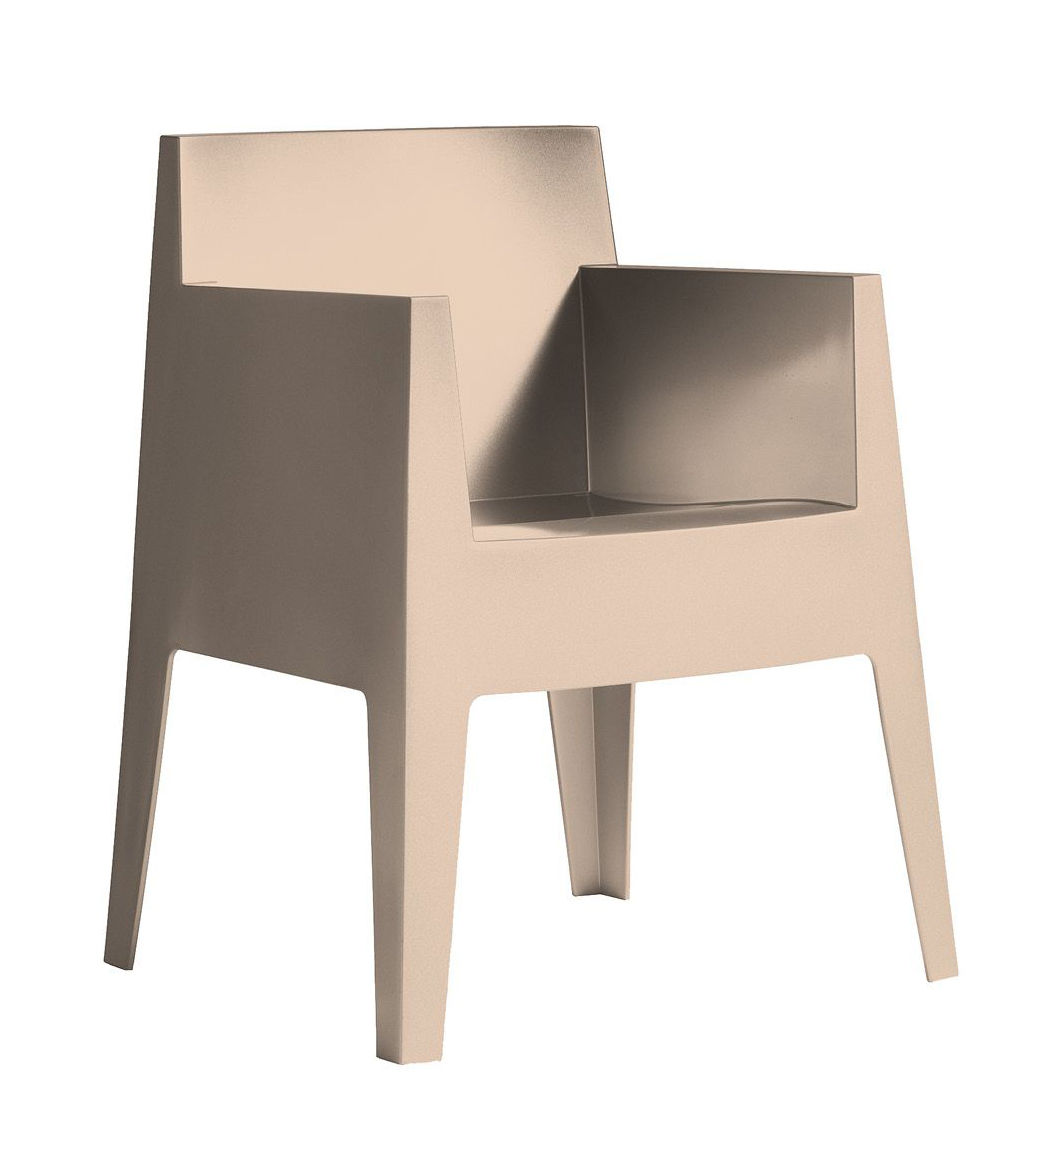 Furniture - Chairs - Toy Stackable armchair by Driade - Powdered beige - Polypropylene